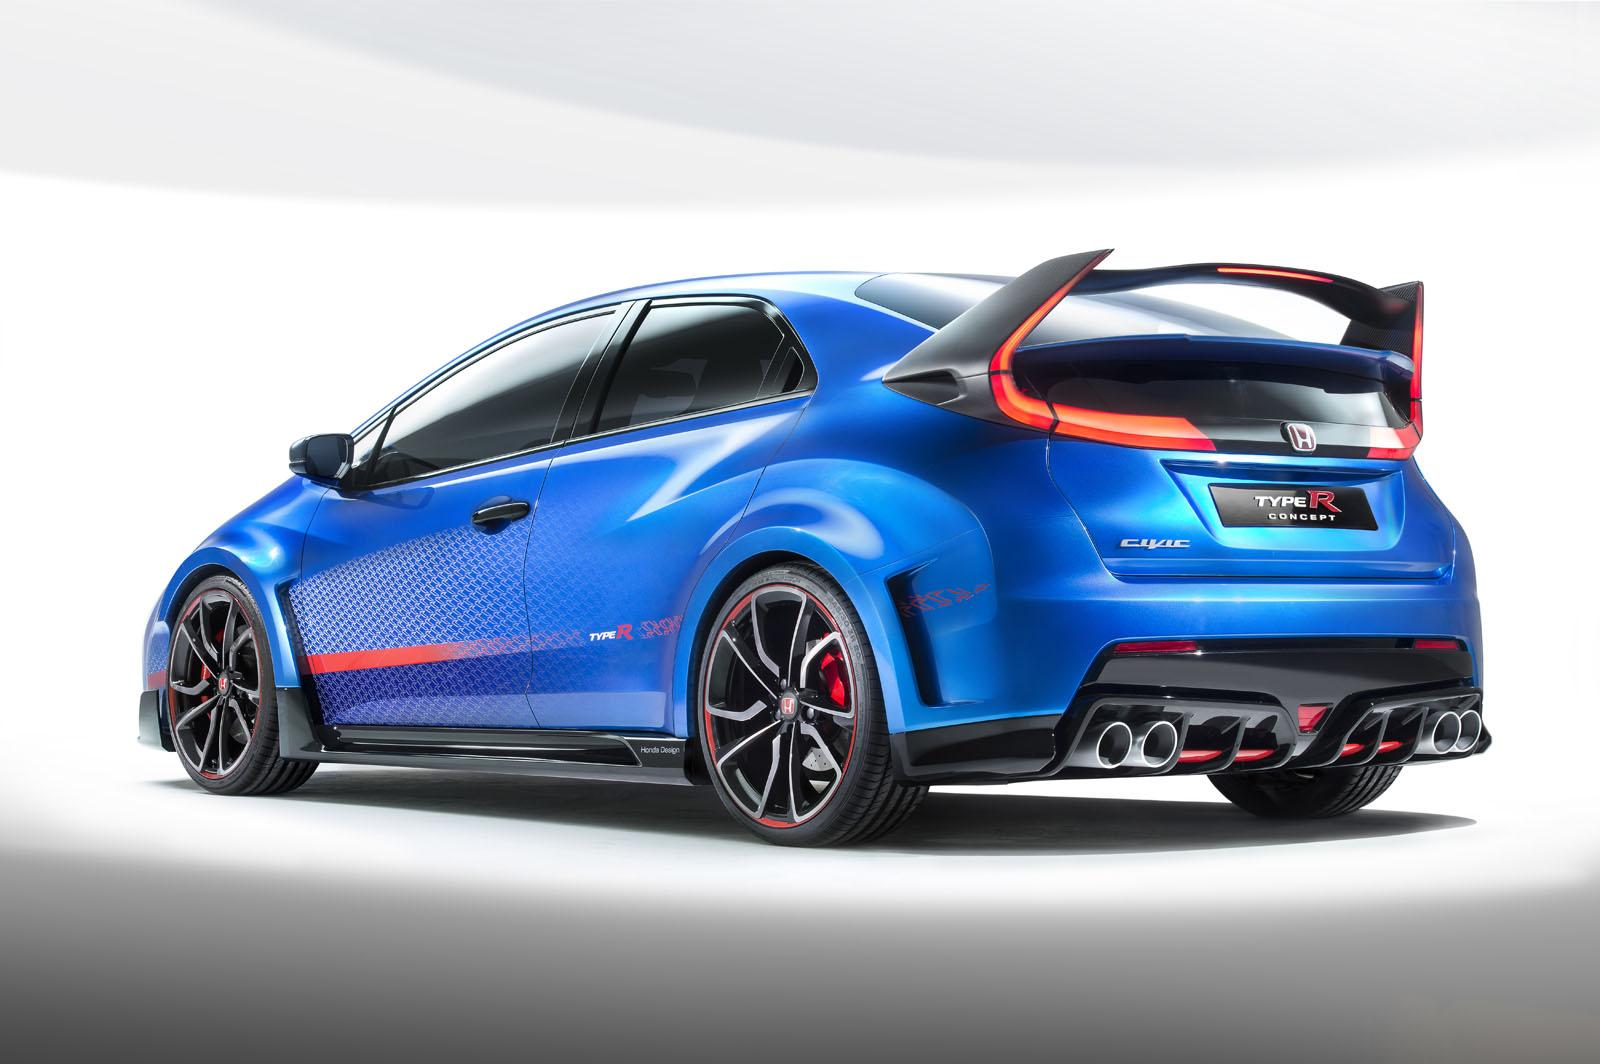 2017 Honda Civic Type R 2016 Ferrari Ff M Next Jeep Wrangler Today S Car News